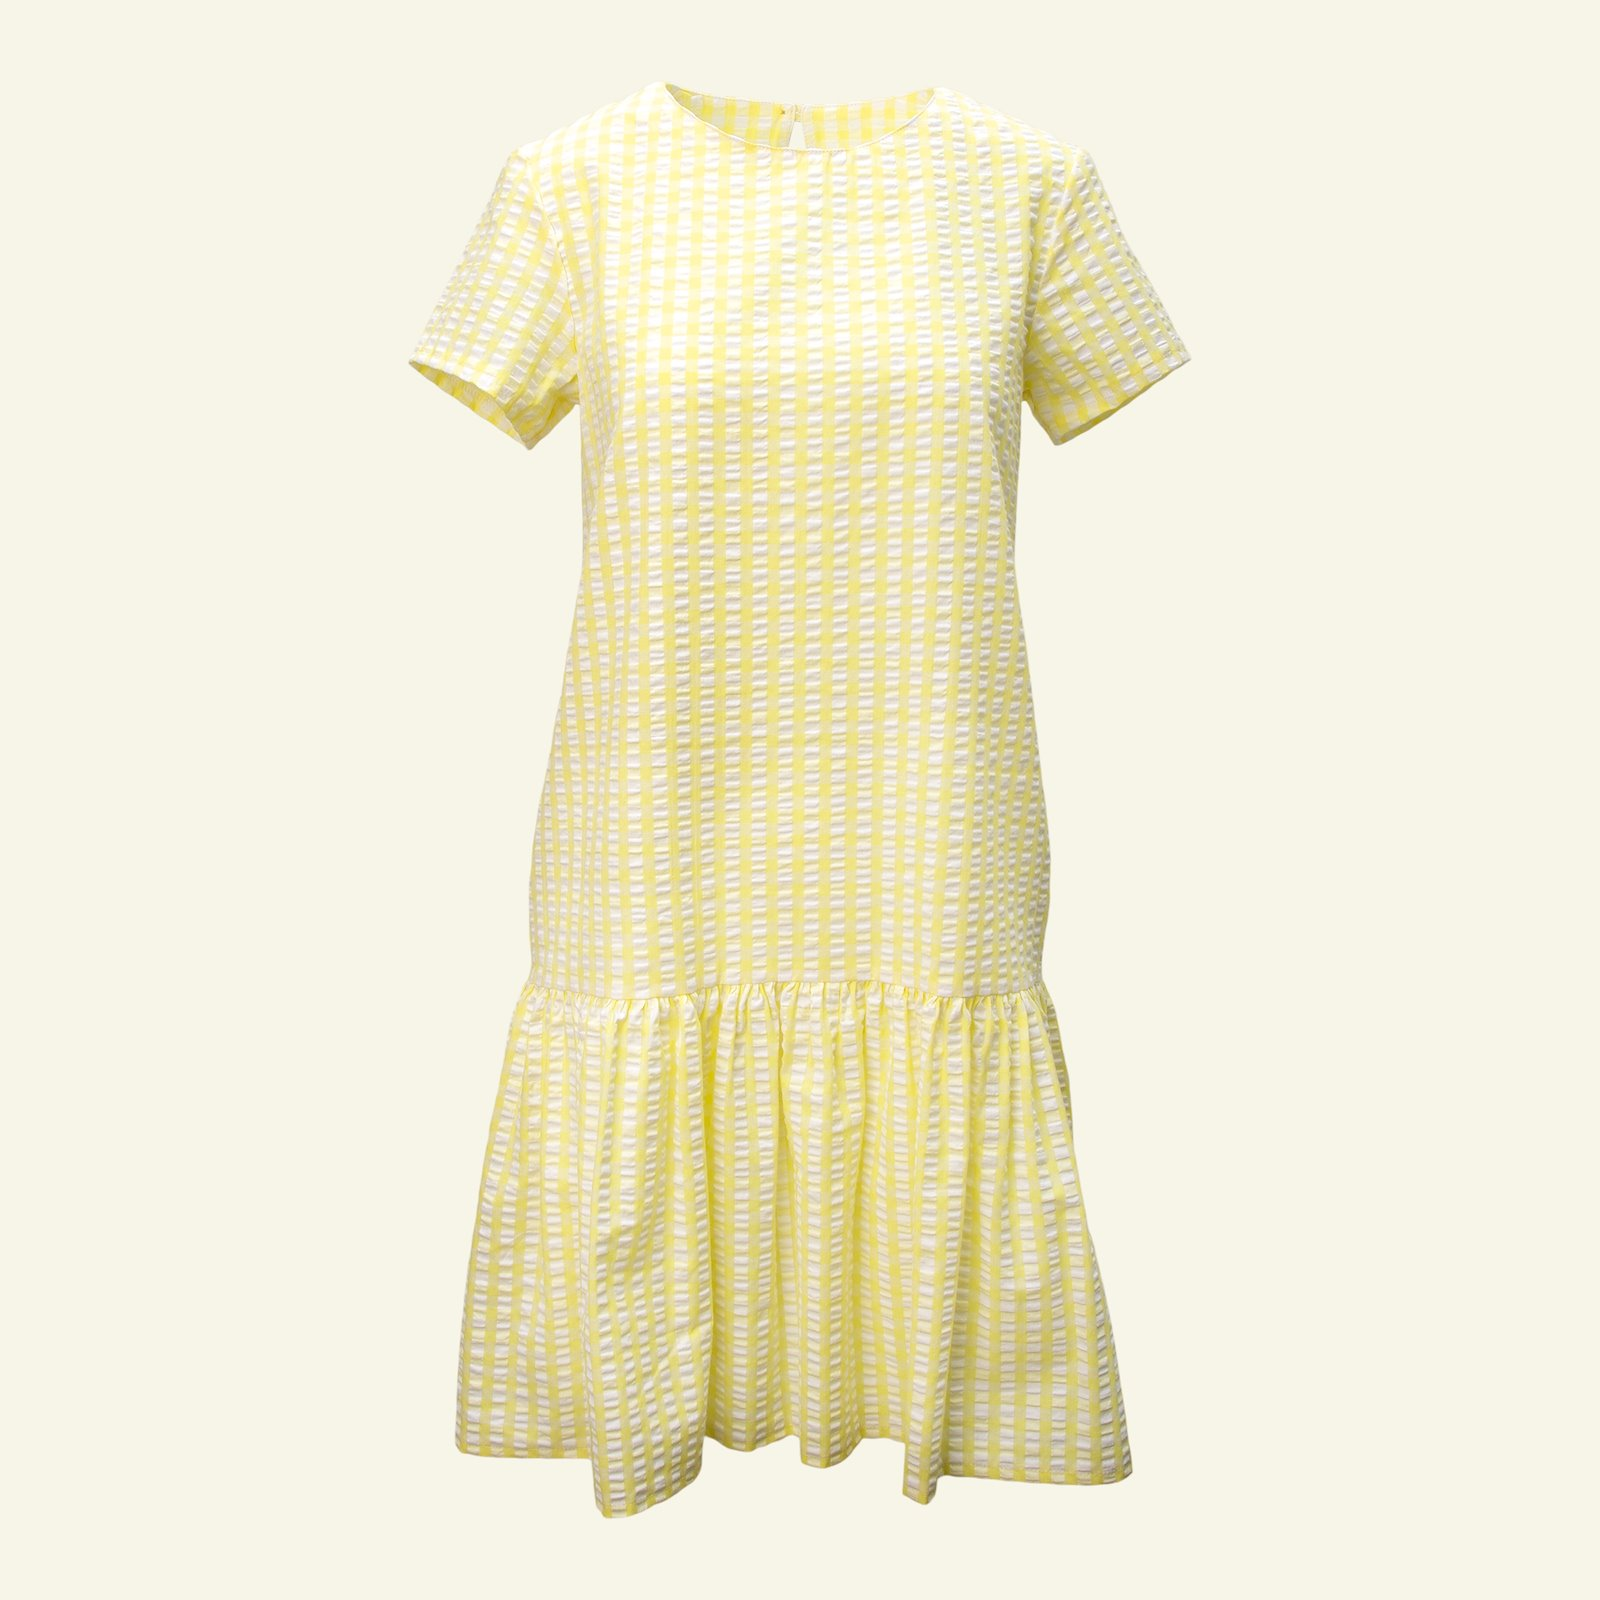 Dress with flounce and blouse, 40/12 p23145_580046_sskit